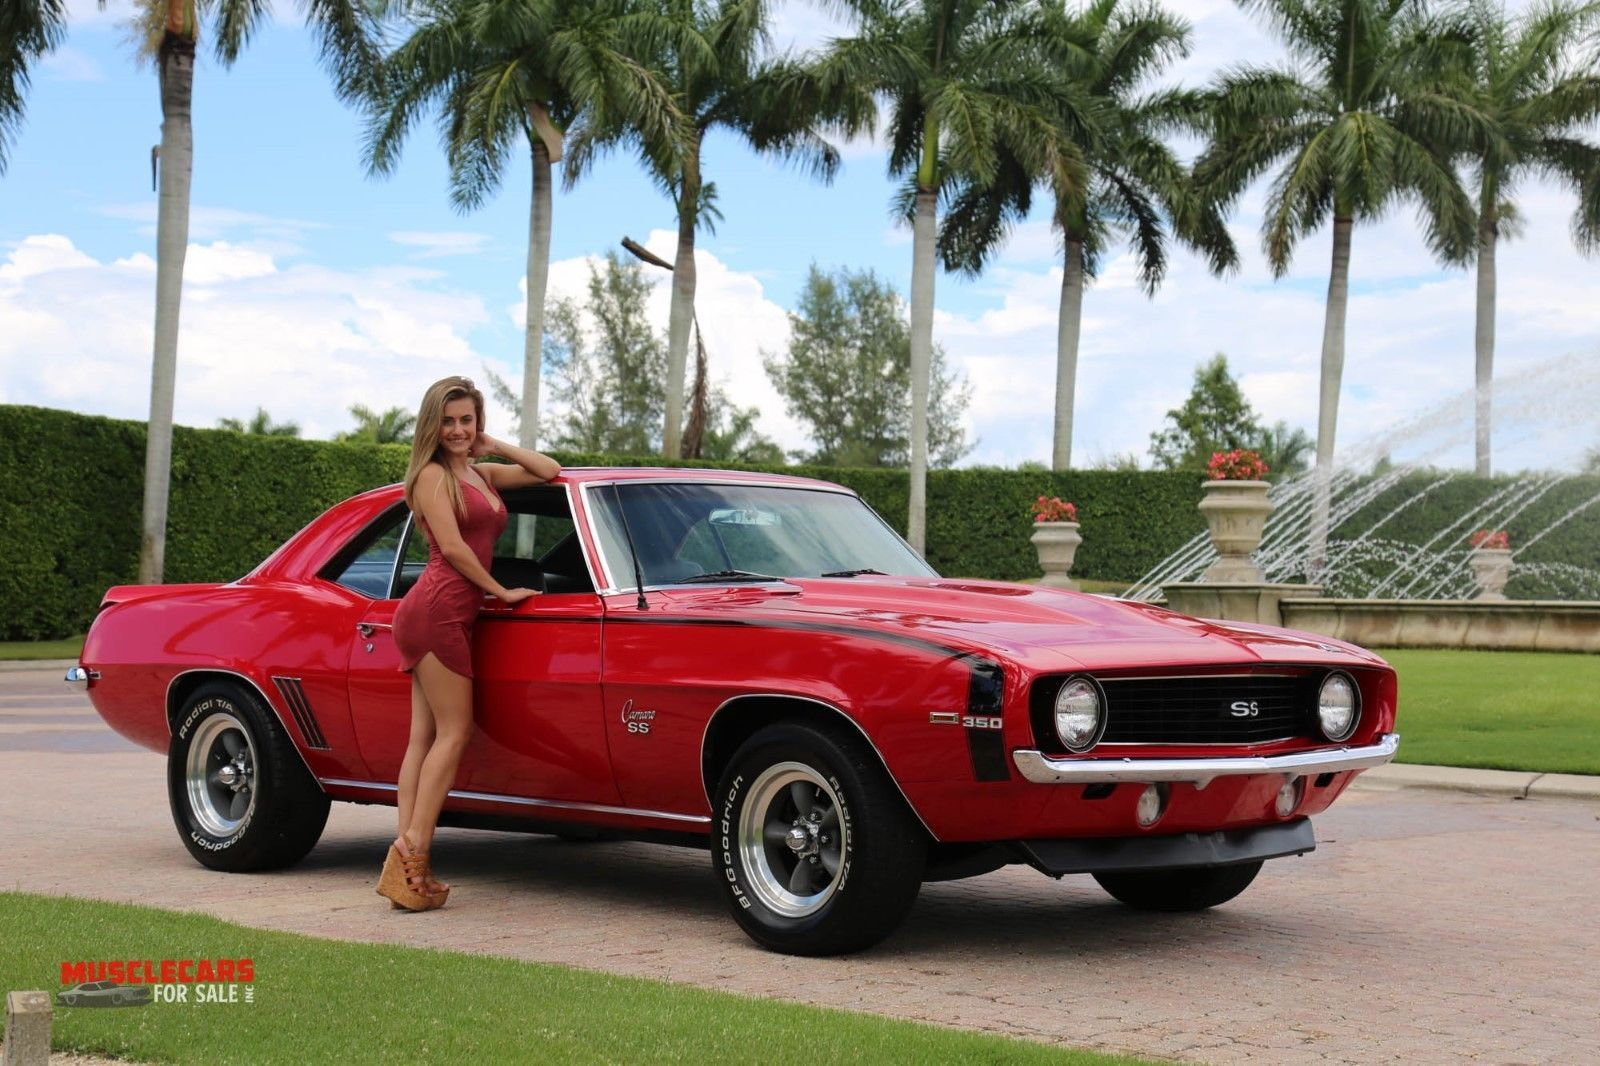 1969 camaro for sale in georgia - Cool Great 1969 Chevrolet Camaro Ss 1969 Chevy Camaro 383 2017 2018 Check More At Http